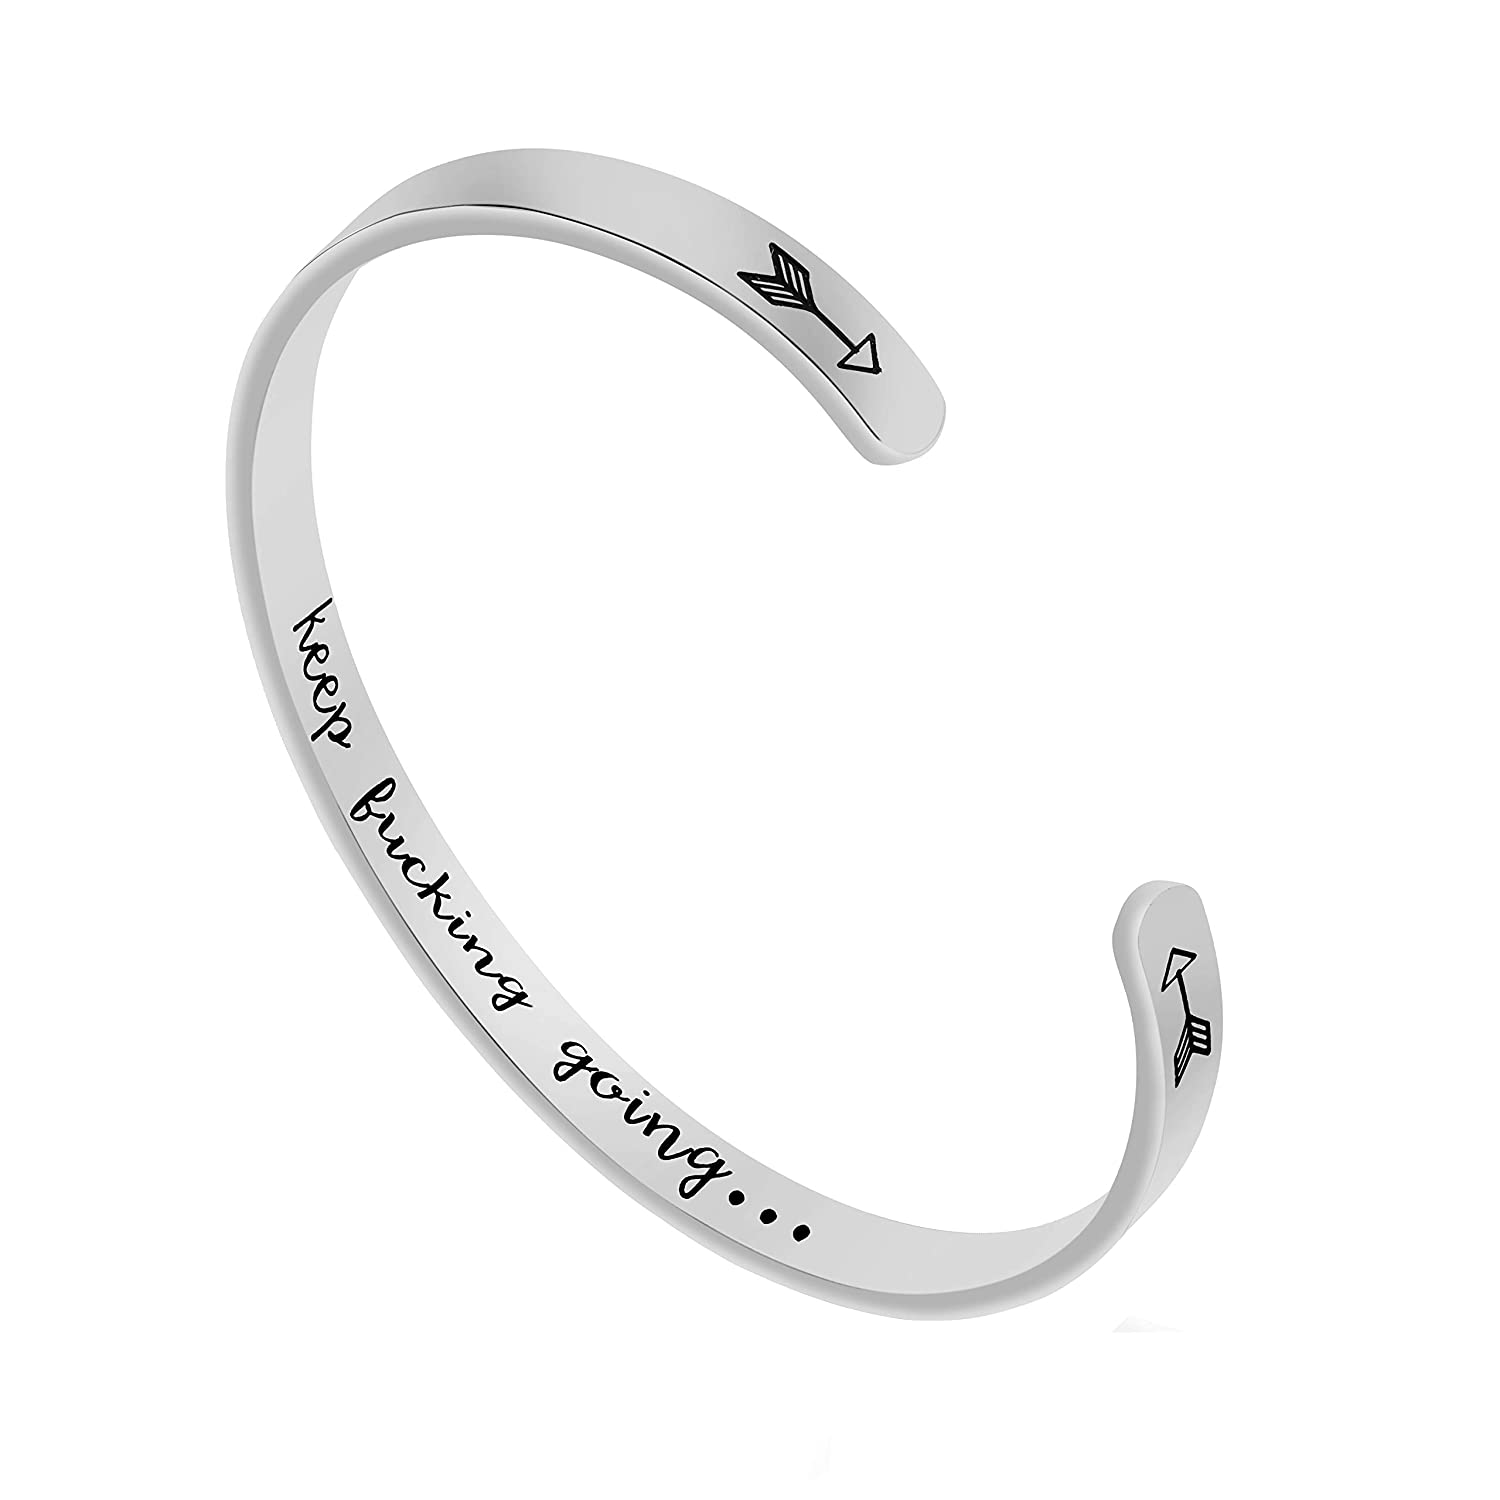 Fashionalife Inspirational Jewelry for Women Cuff Bangle Bracelets Stainless Steel Gifts Engraved Message